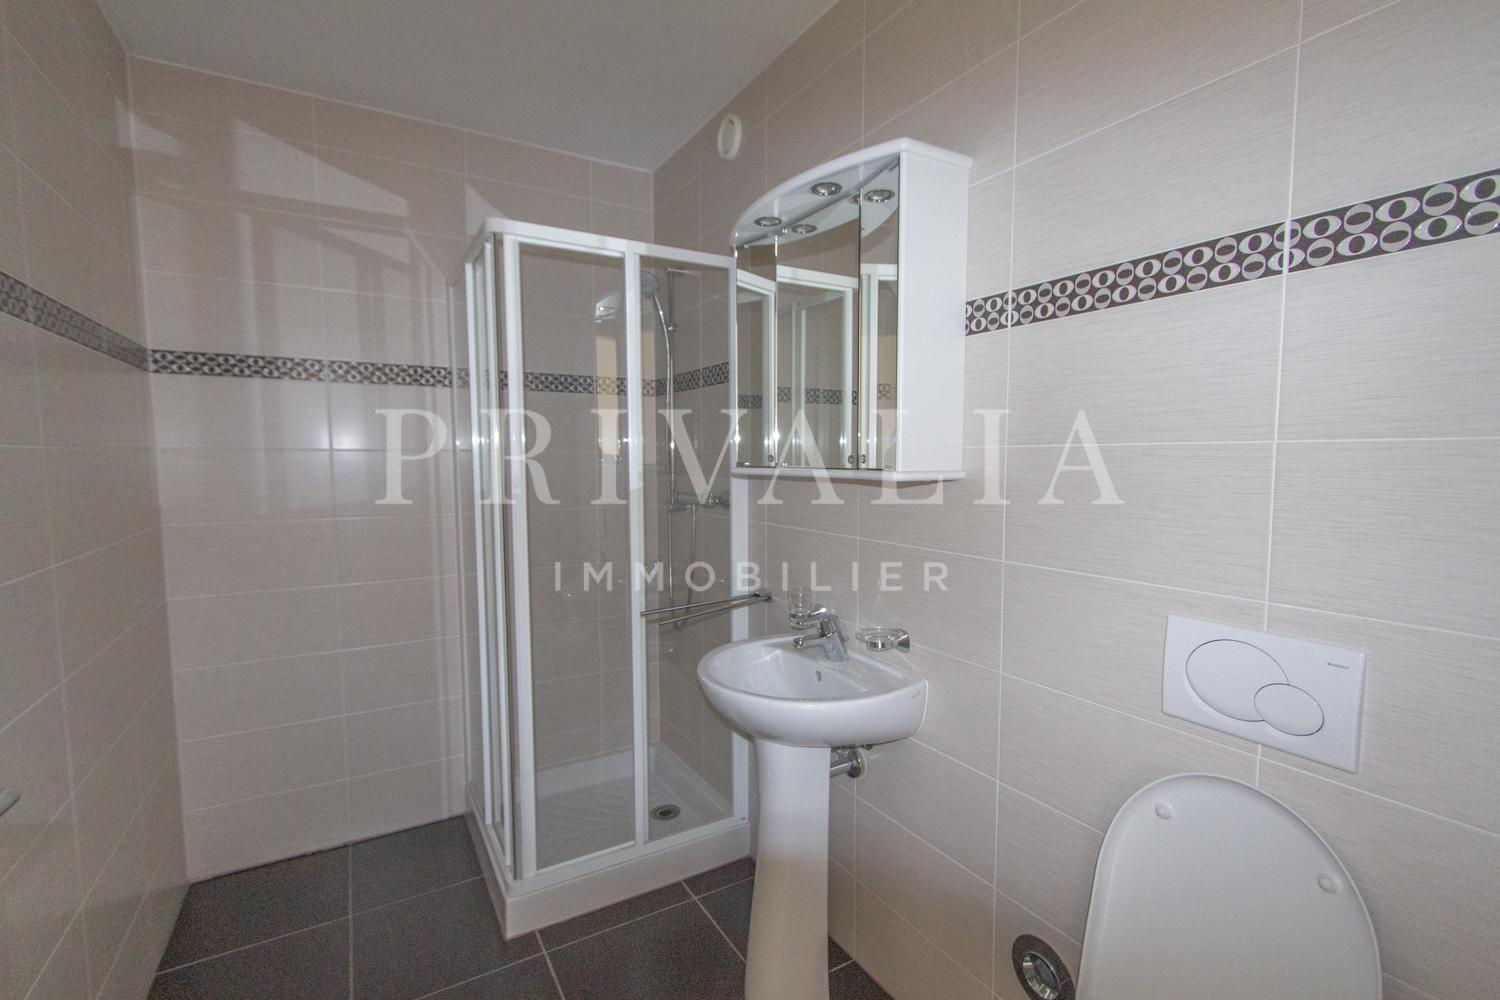 PrivaliaNewly built 5-room apartment with terrace and garden